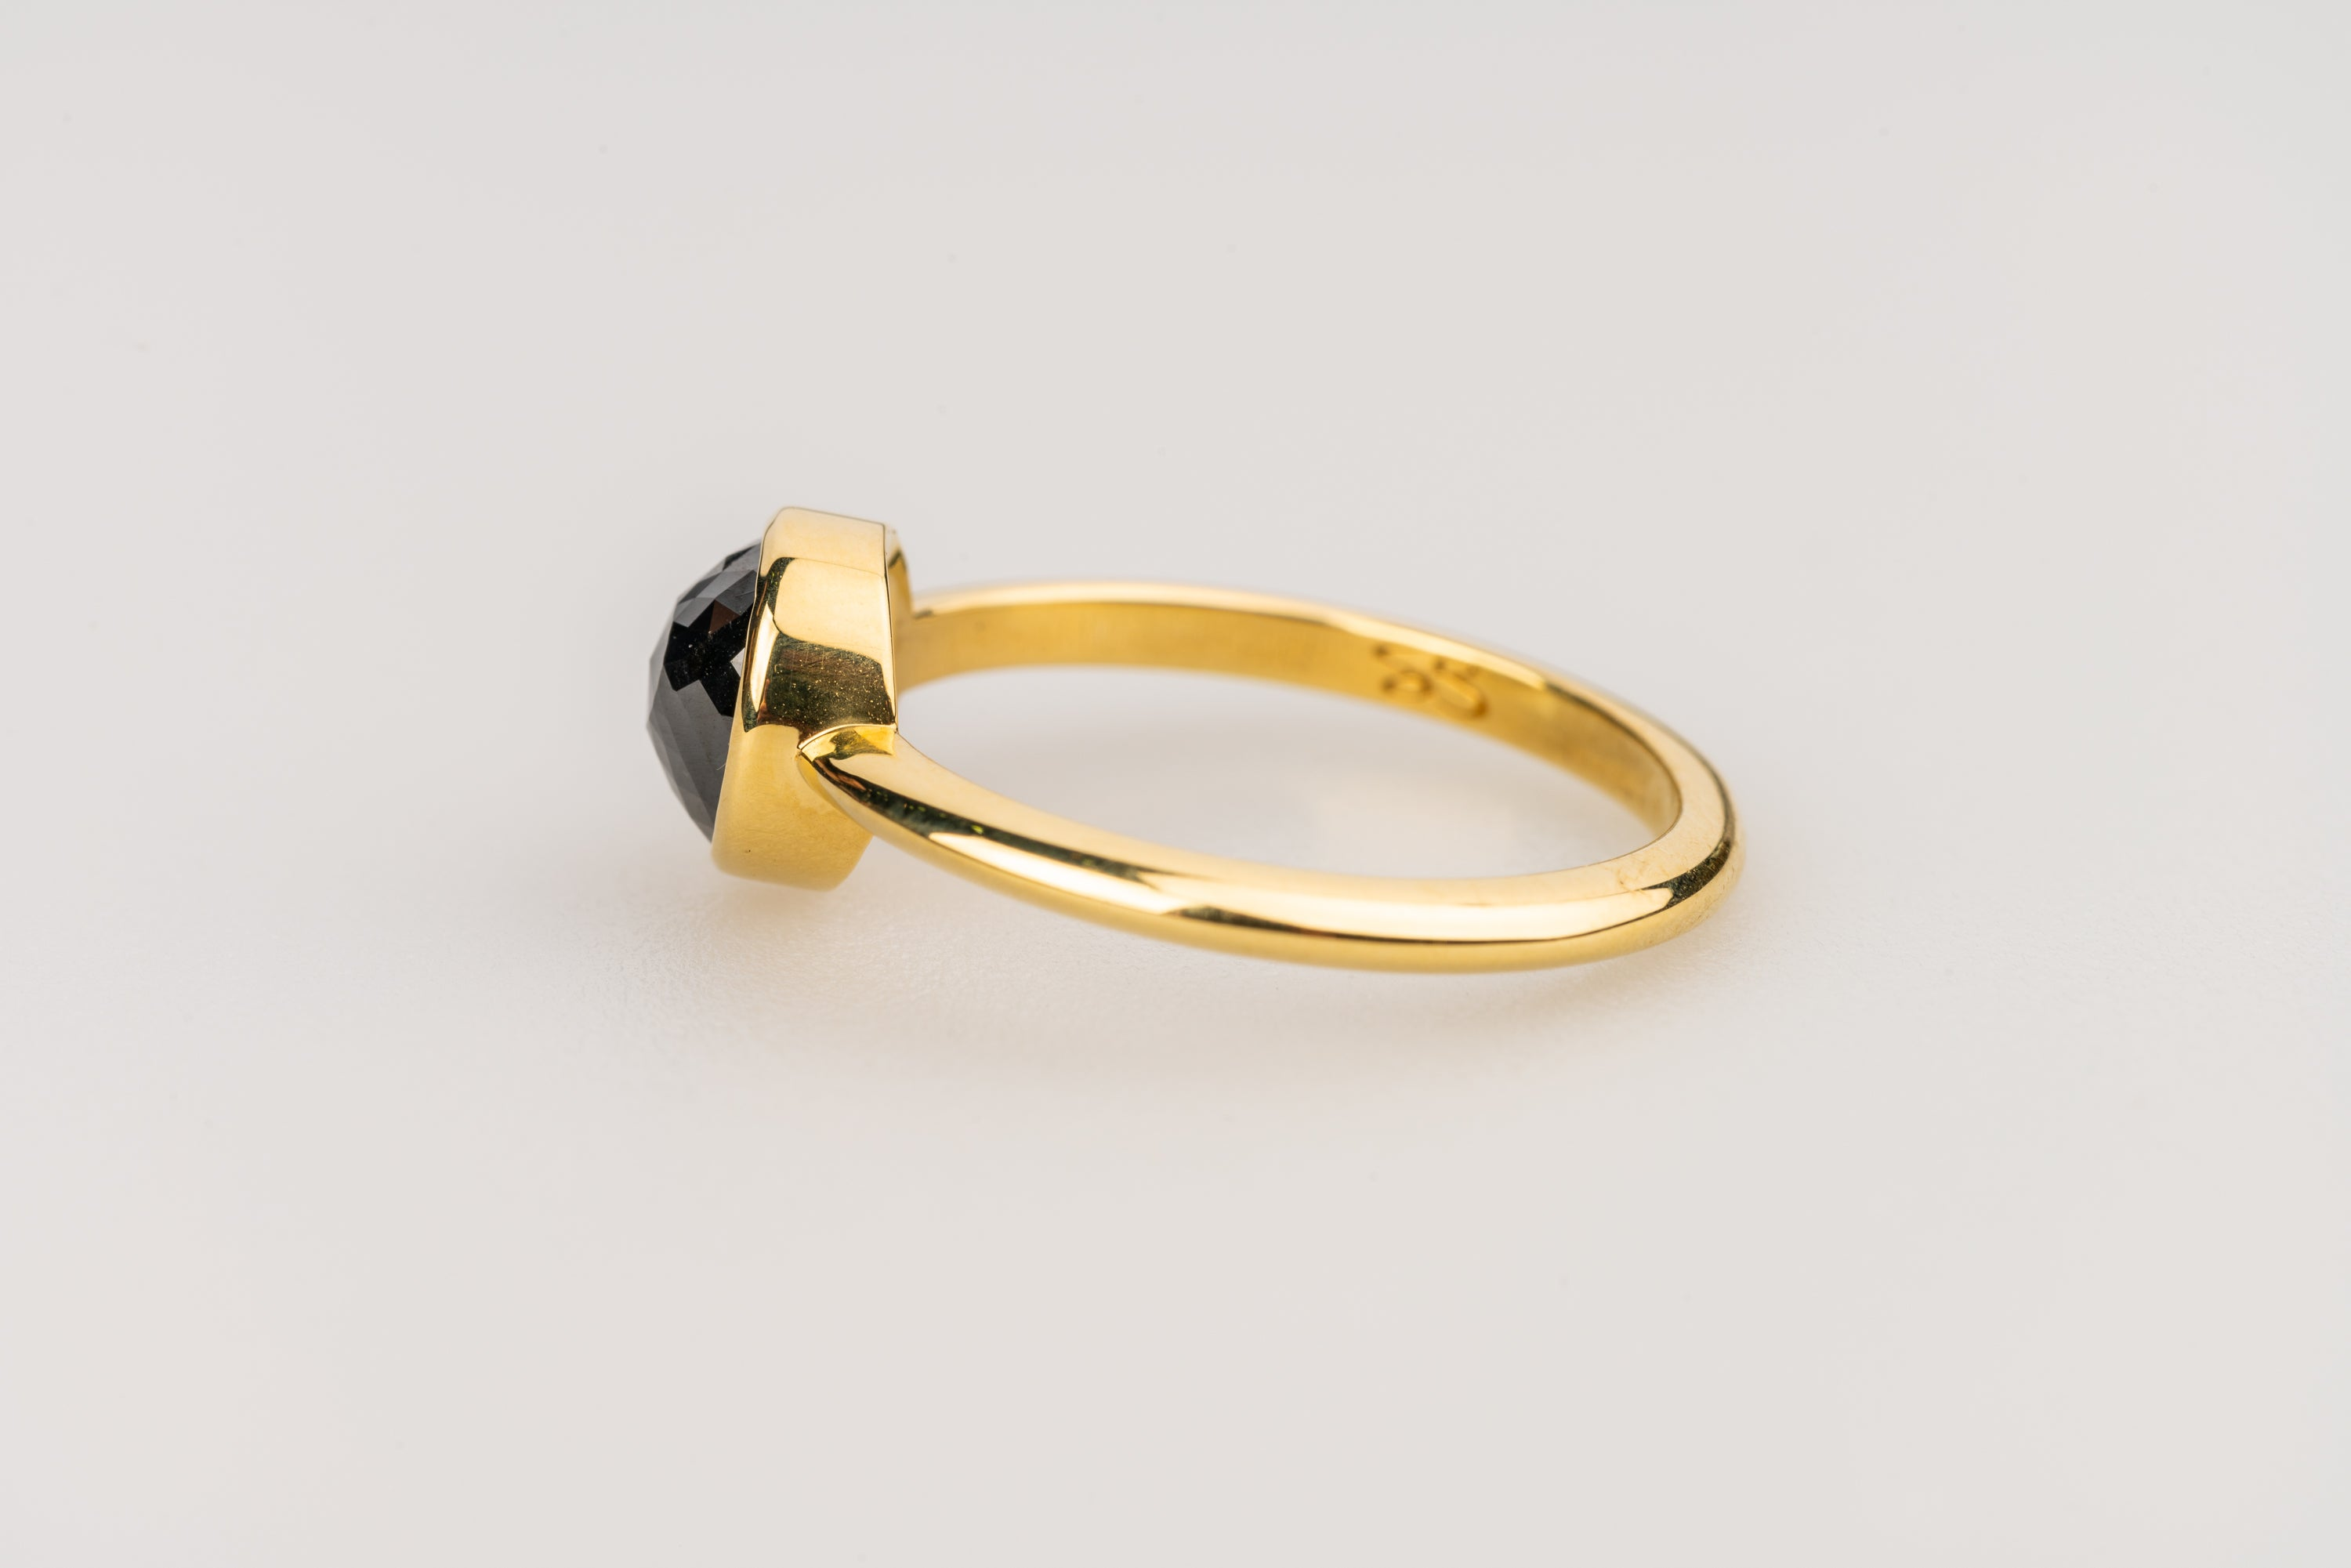 18k Yellow Gold and Round Rose Cut Black Diamond Ring